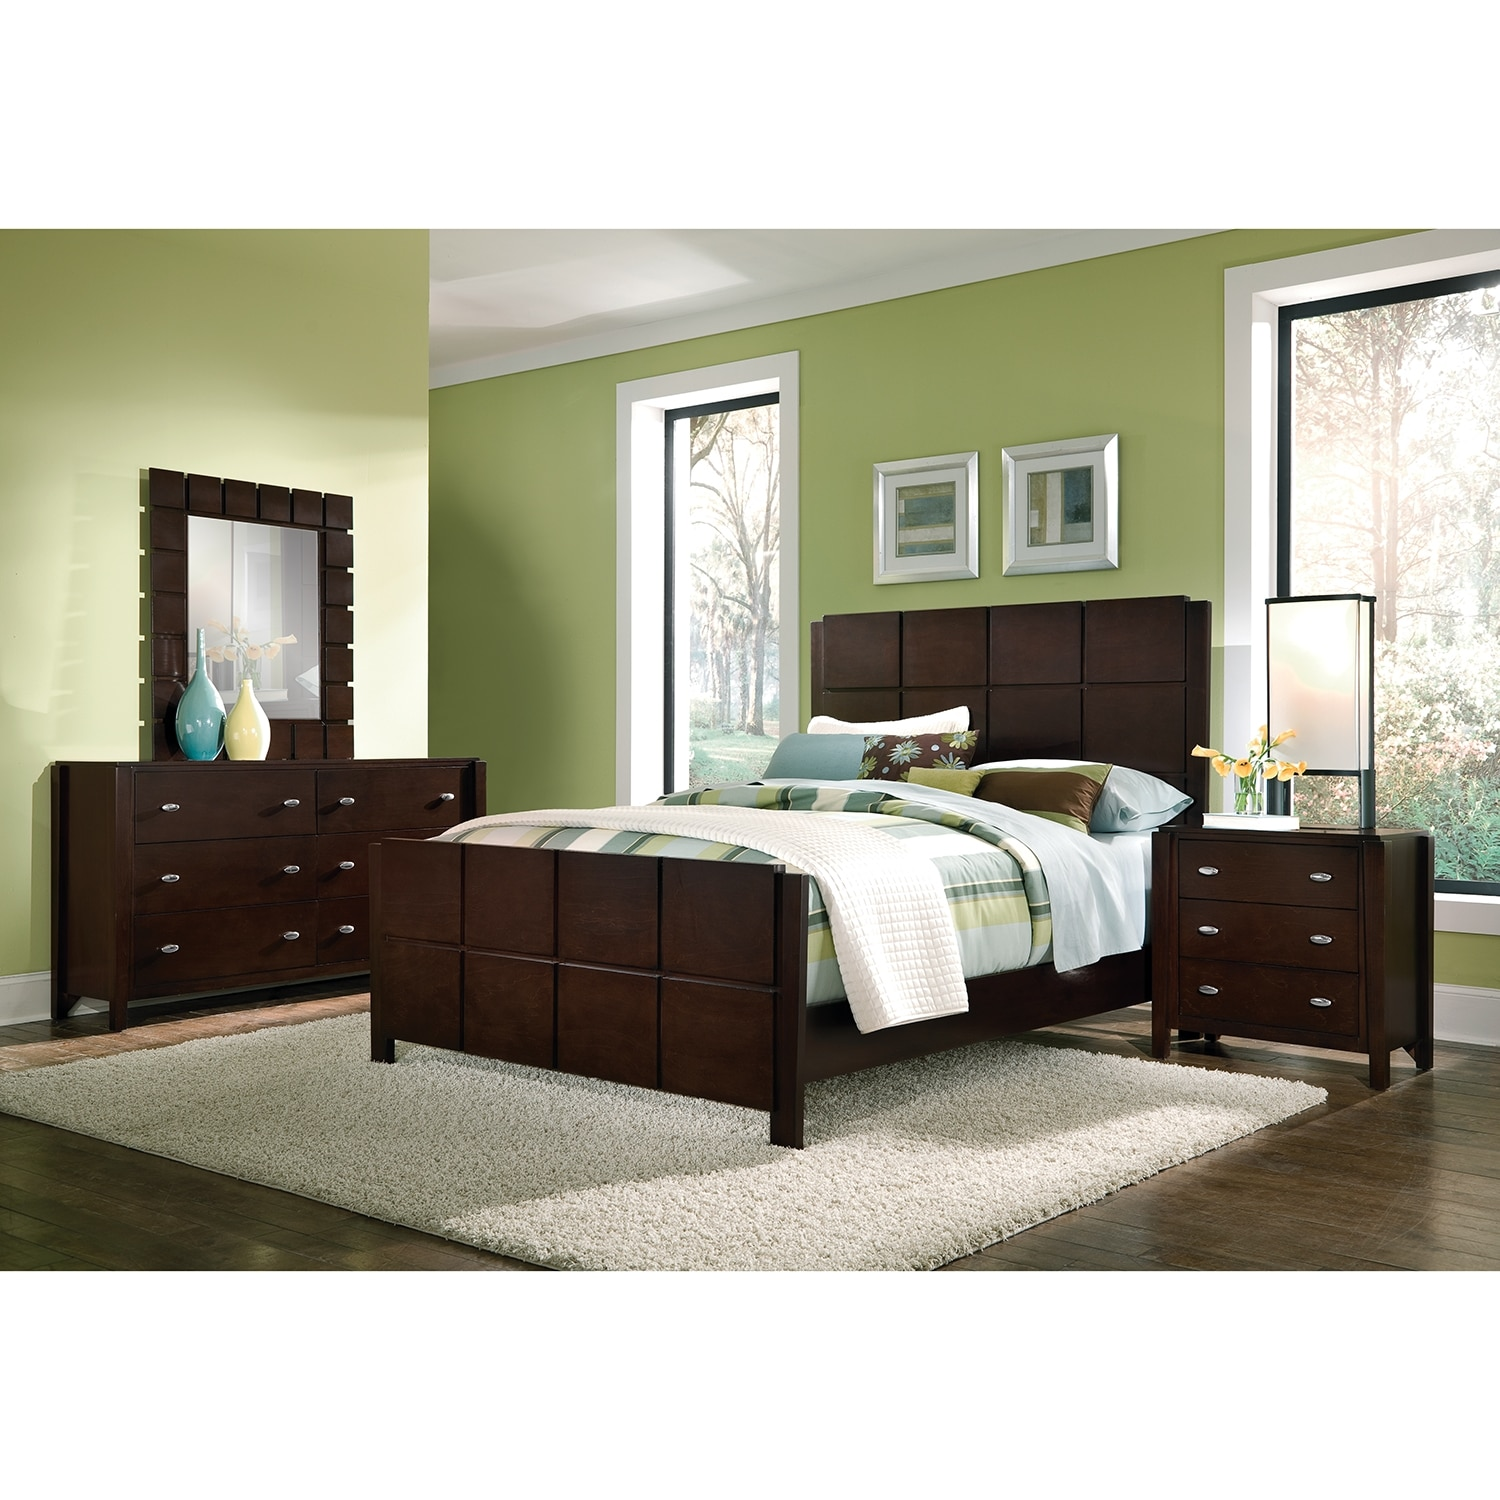 Arts and crafts bedroom furniture - Value City Furniture Arts And Crafts Bedroom Modroxcom